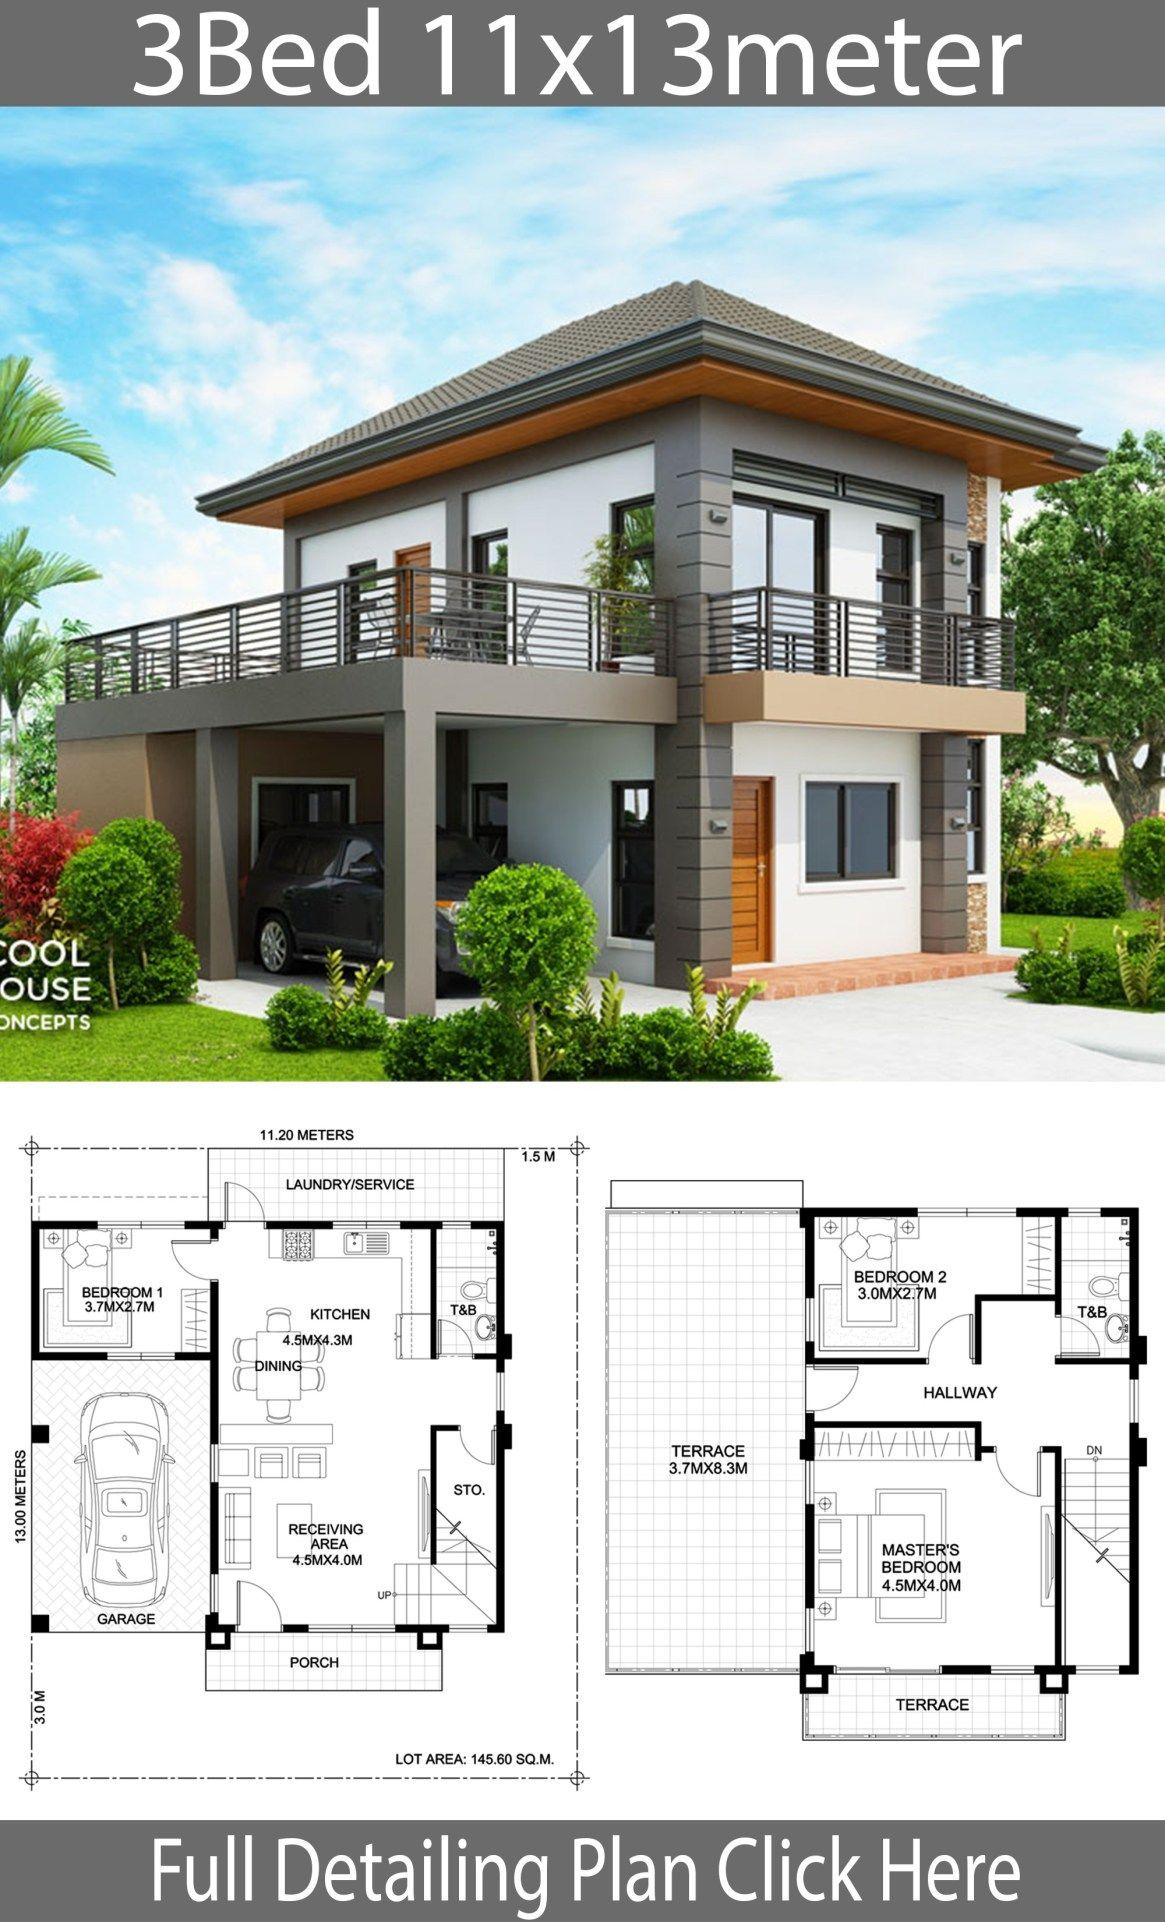 Home Design Plan 11x13m With 3 Bedrooms Home Ideas In 2020 2 Storey House Design House Architecture Design Small House Design Plans